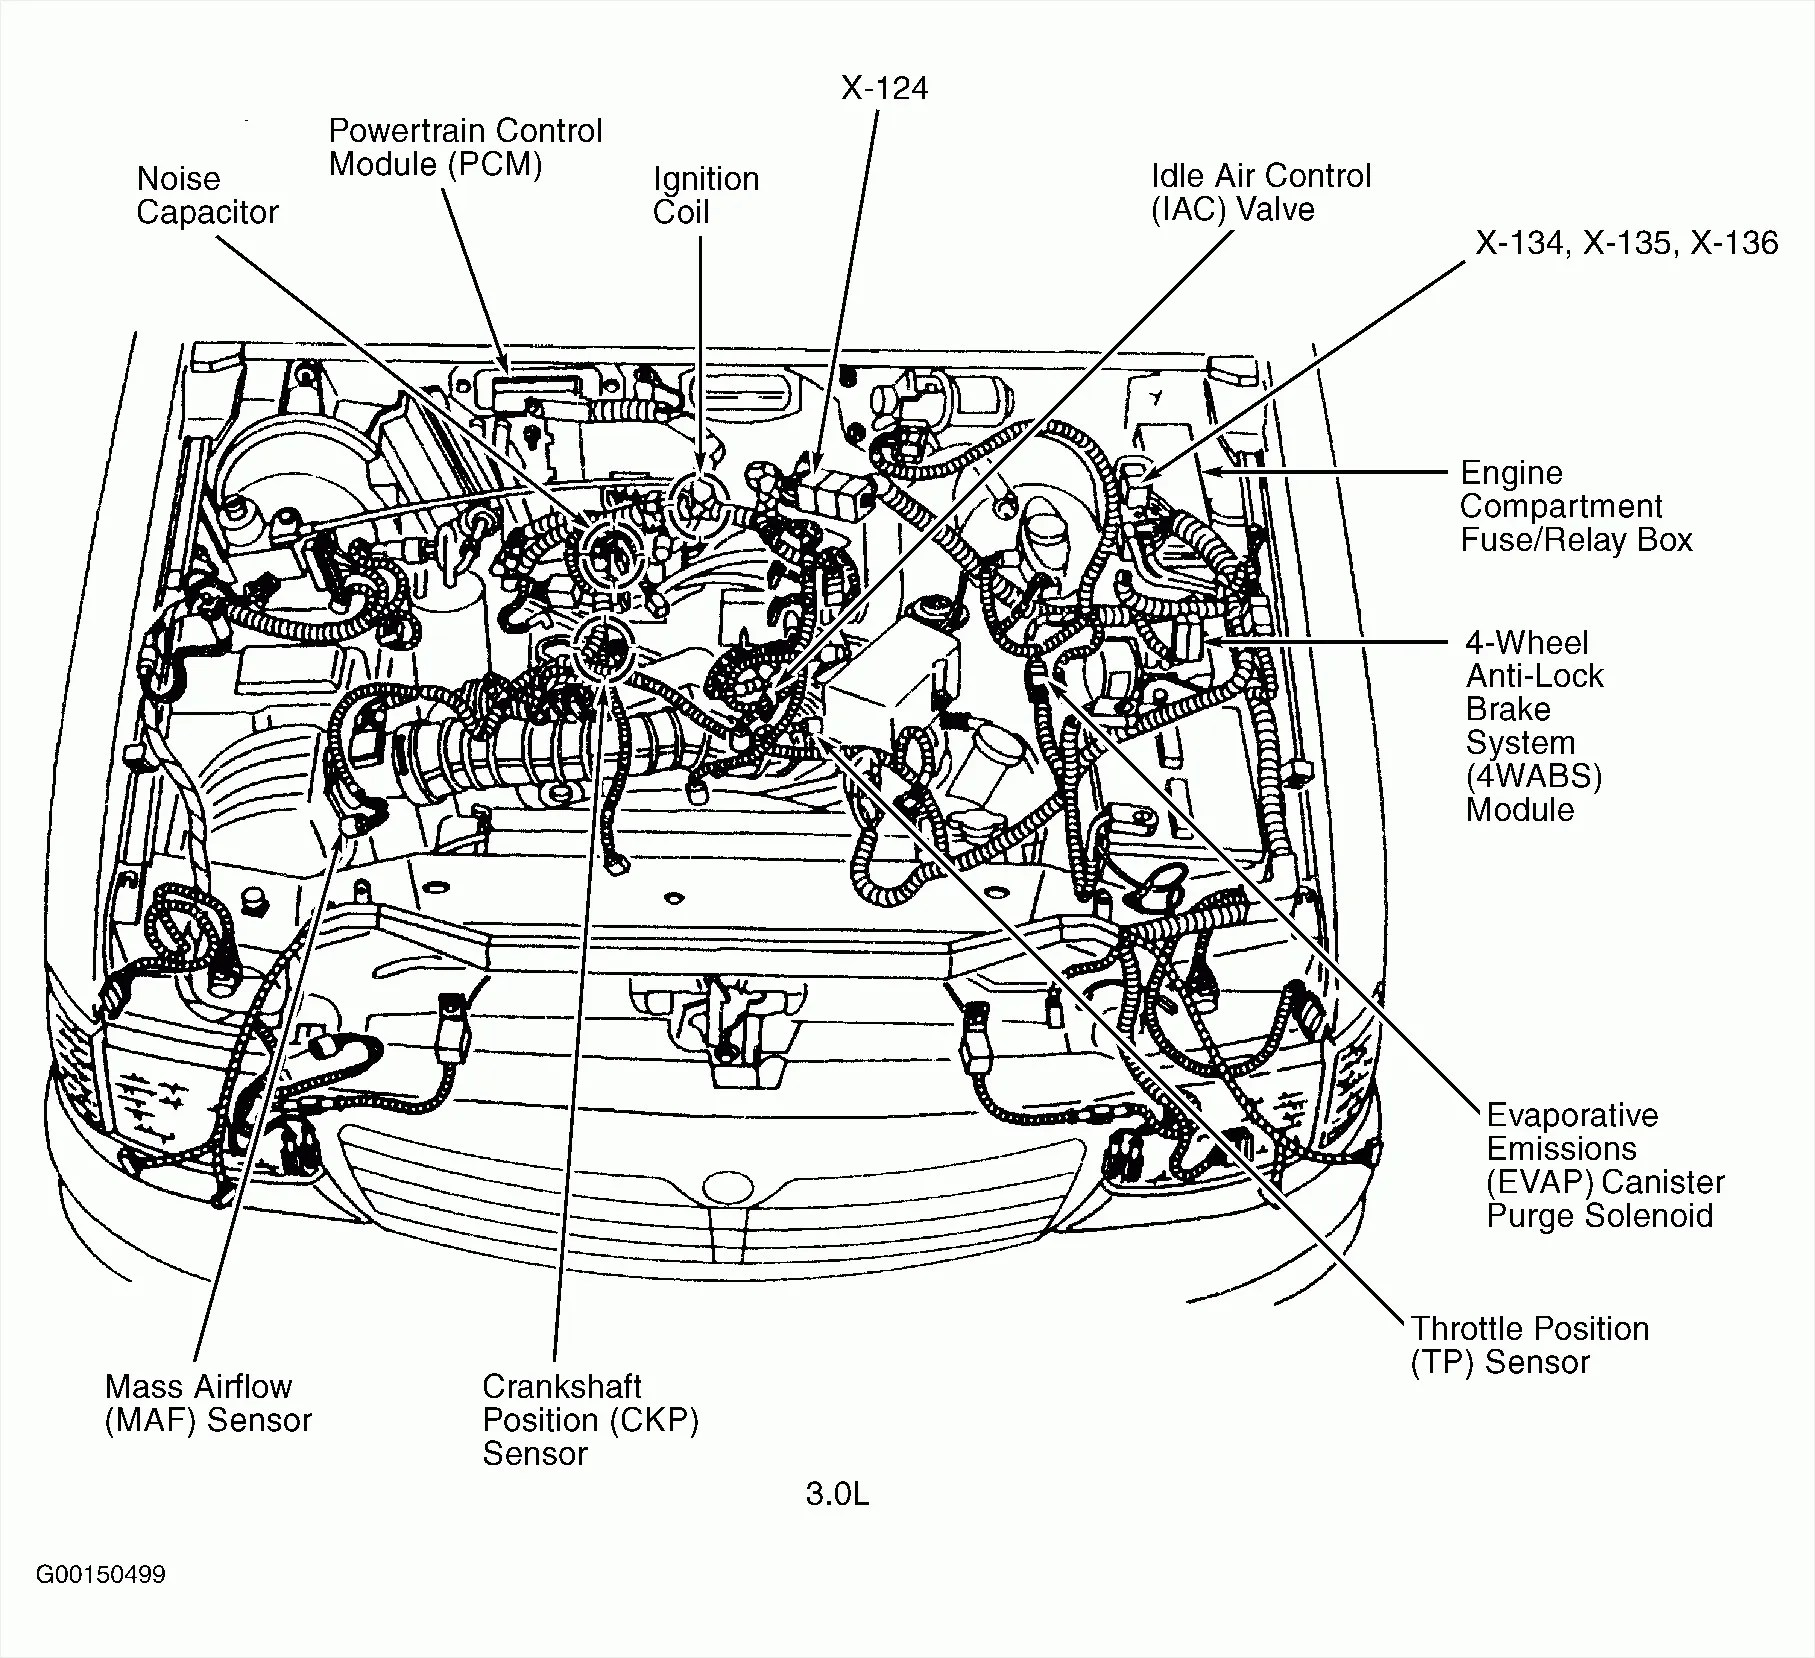 hight resolution of mitsubishi montero engine diagram all image about wiring diagrammitsubishi outlander 3 0 engine diagram 20 16